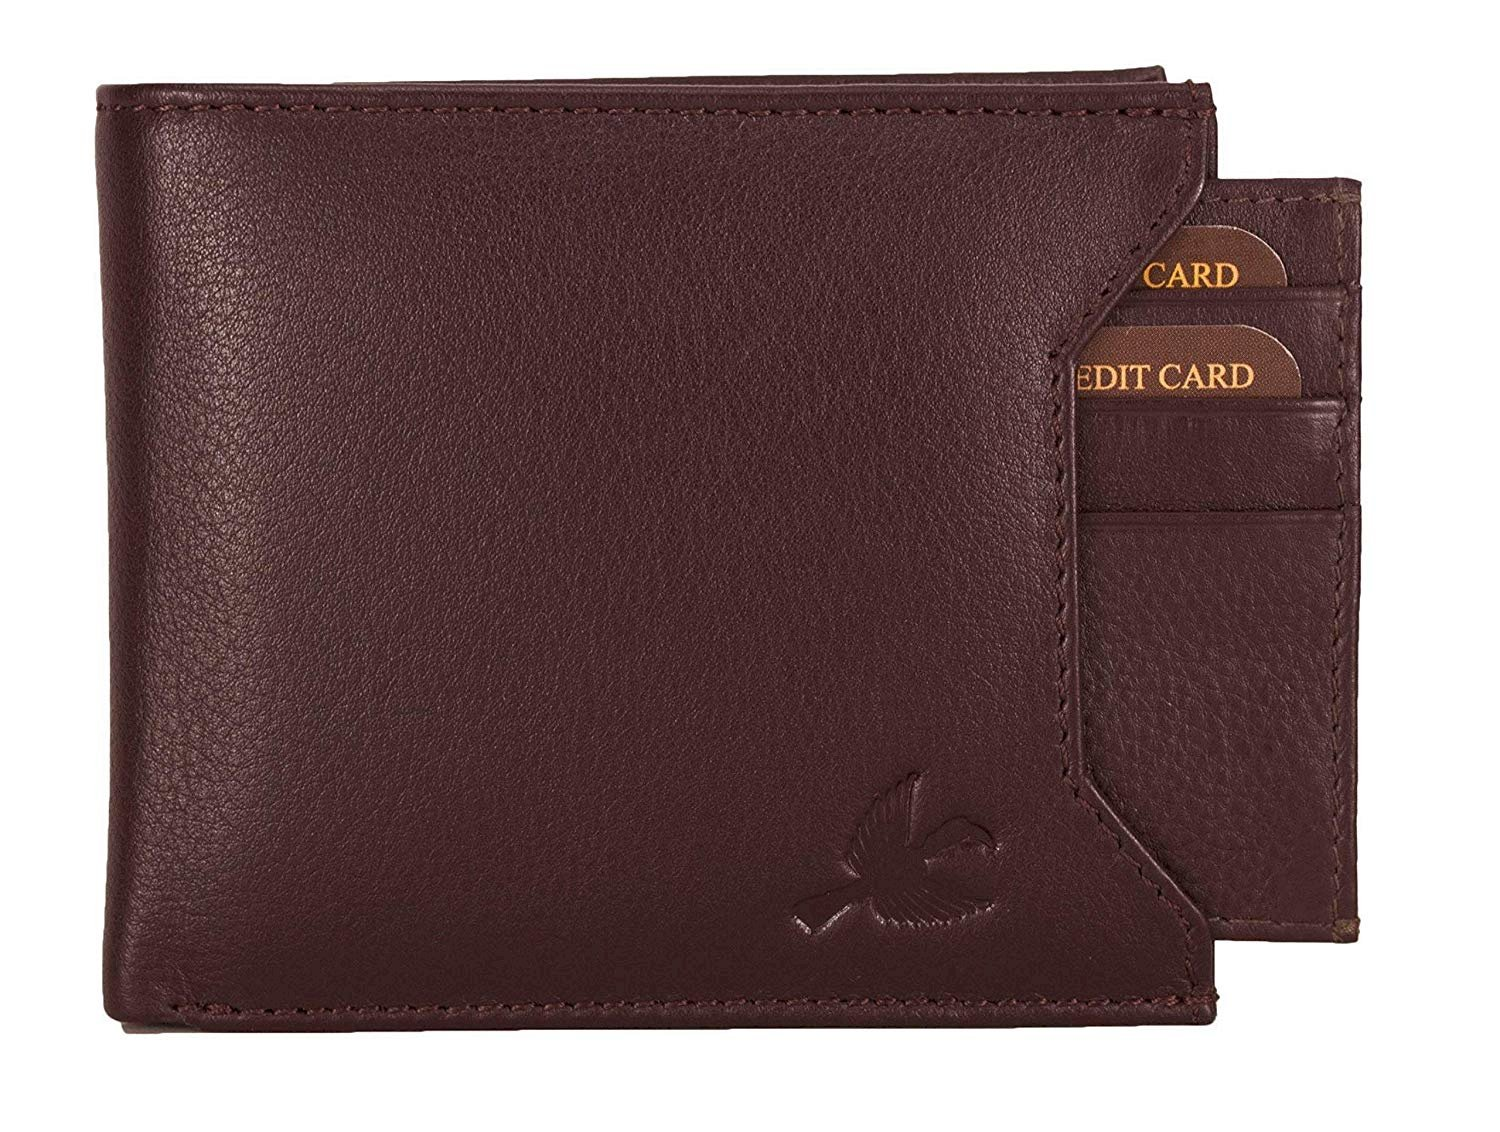 HORNBULL Brown Rigohill Leather Men's Wallet - Fashion Marketplace India | Fashion Re-seller Hub